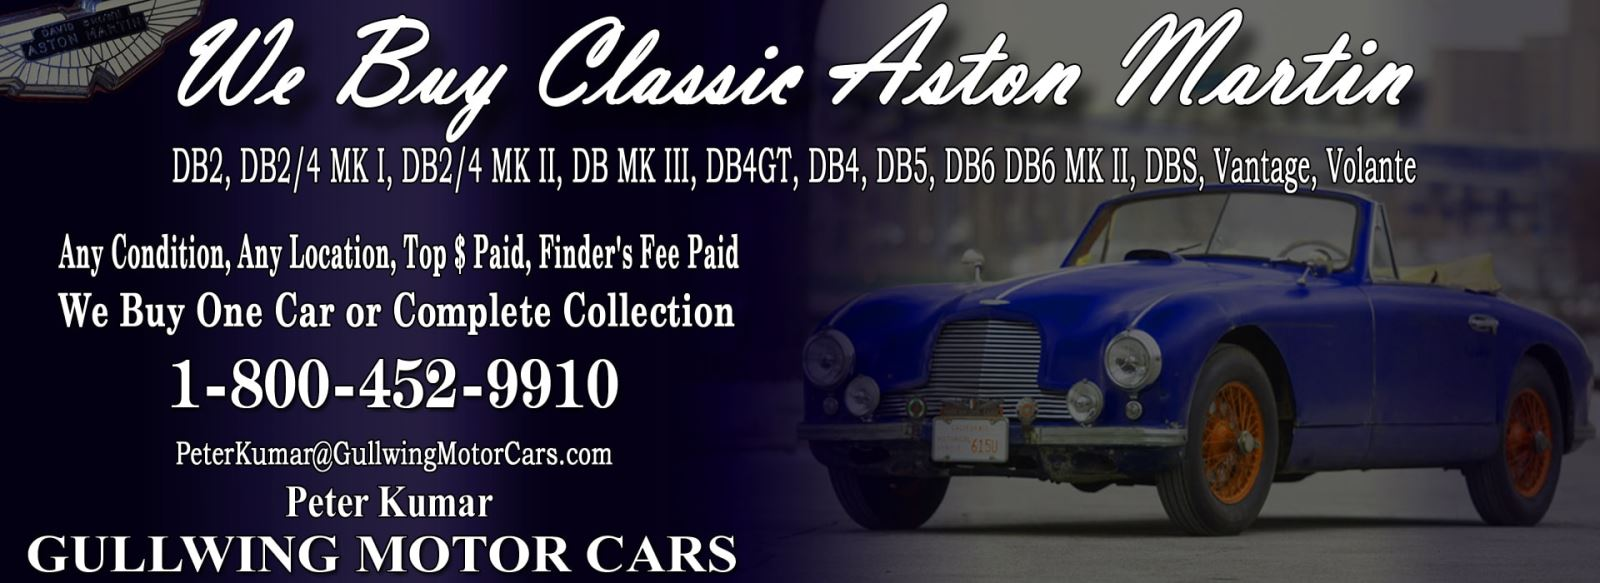 Classic Aston Martin for sale, we buy vintage Aston Martin. Call Peter Kumar. Gullwing Motor